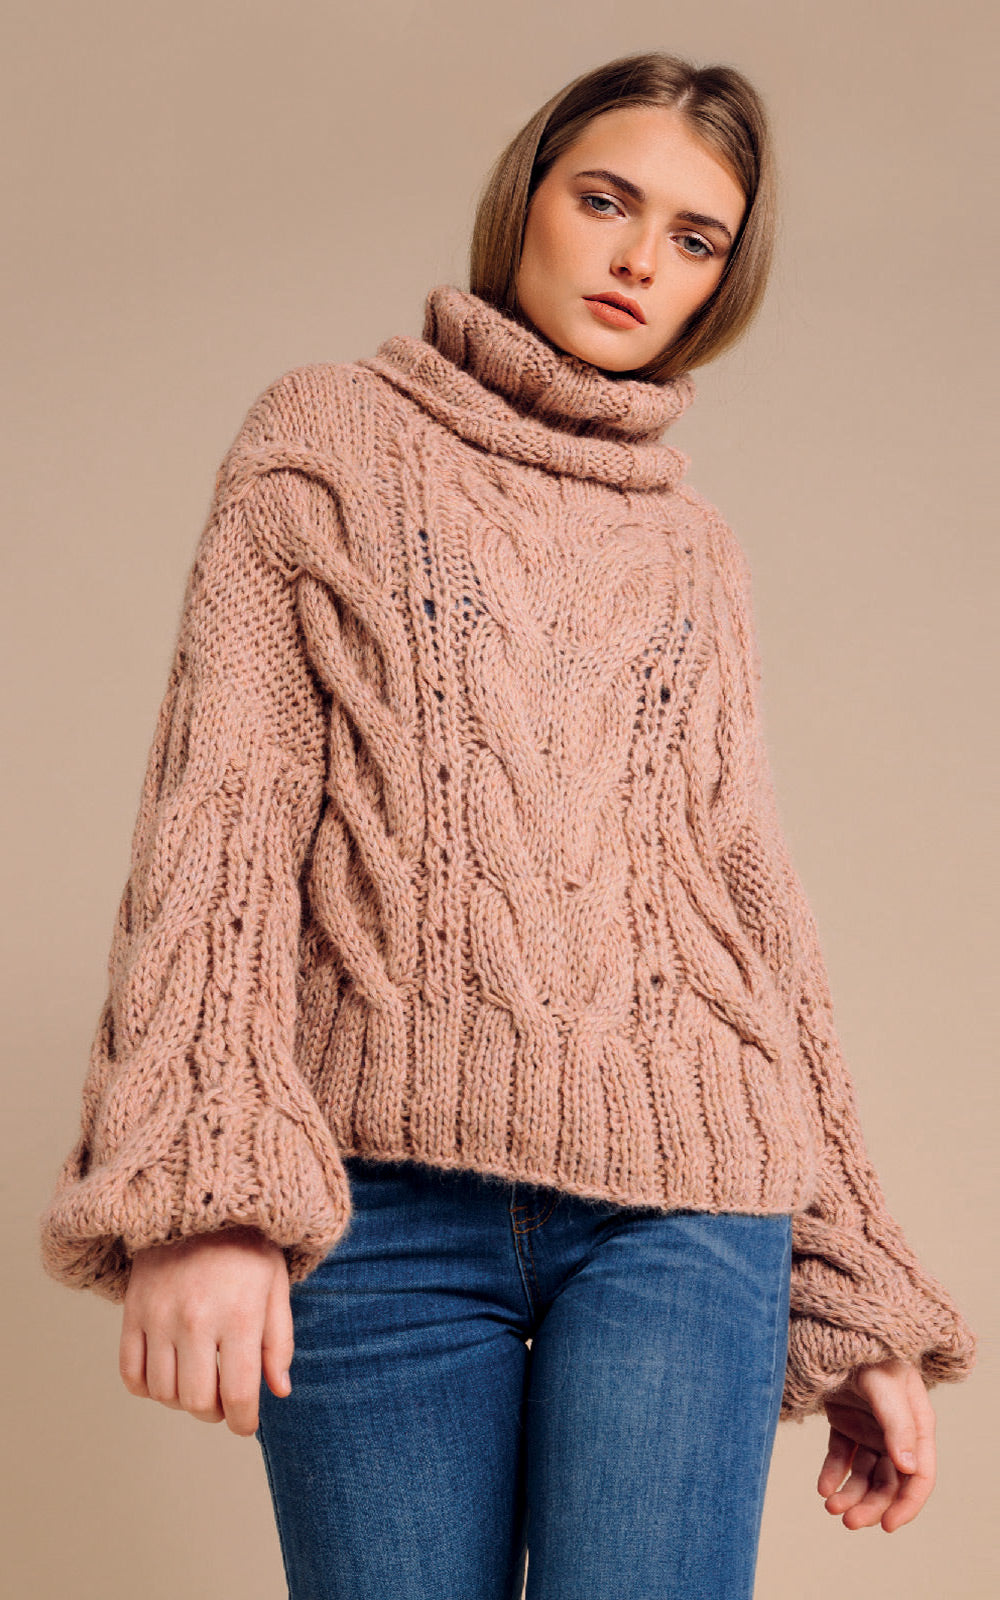 Mantari Rosa Alpaca Cable Knit Puff Sleeve Turtleneck Sweater Dusty Pink